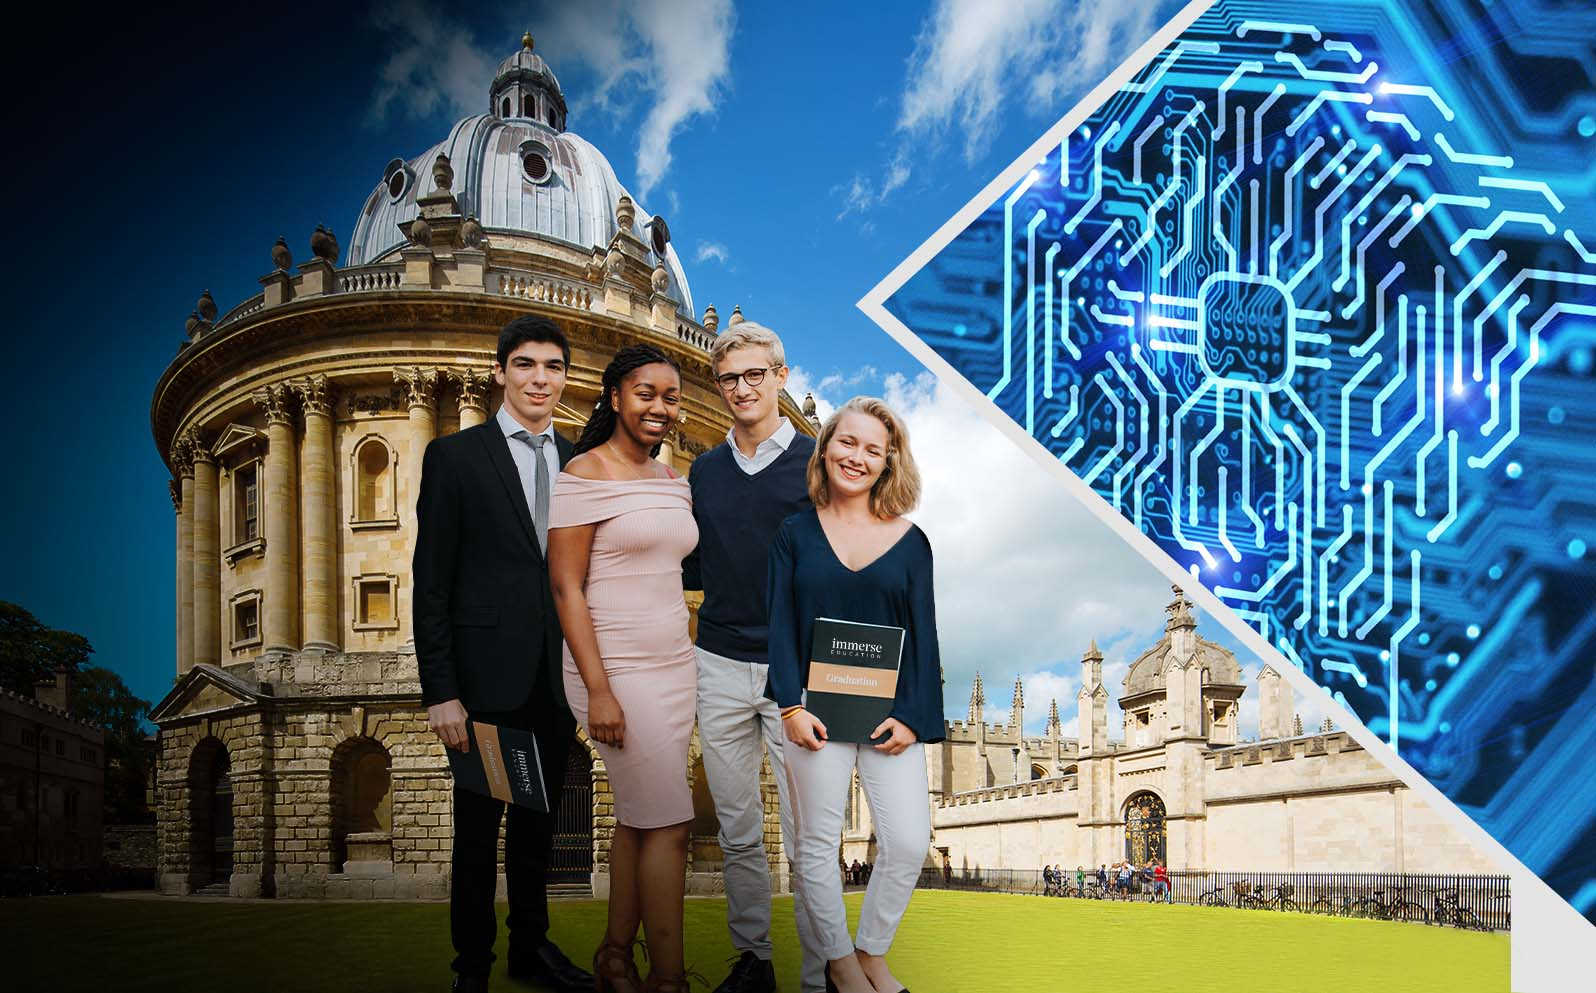 Oxford Architecture Summer Program for Ages 16-18